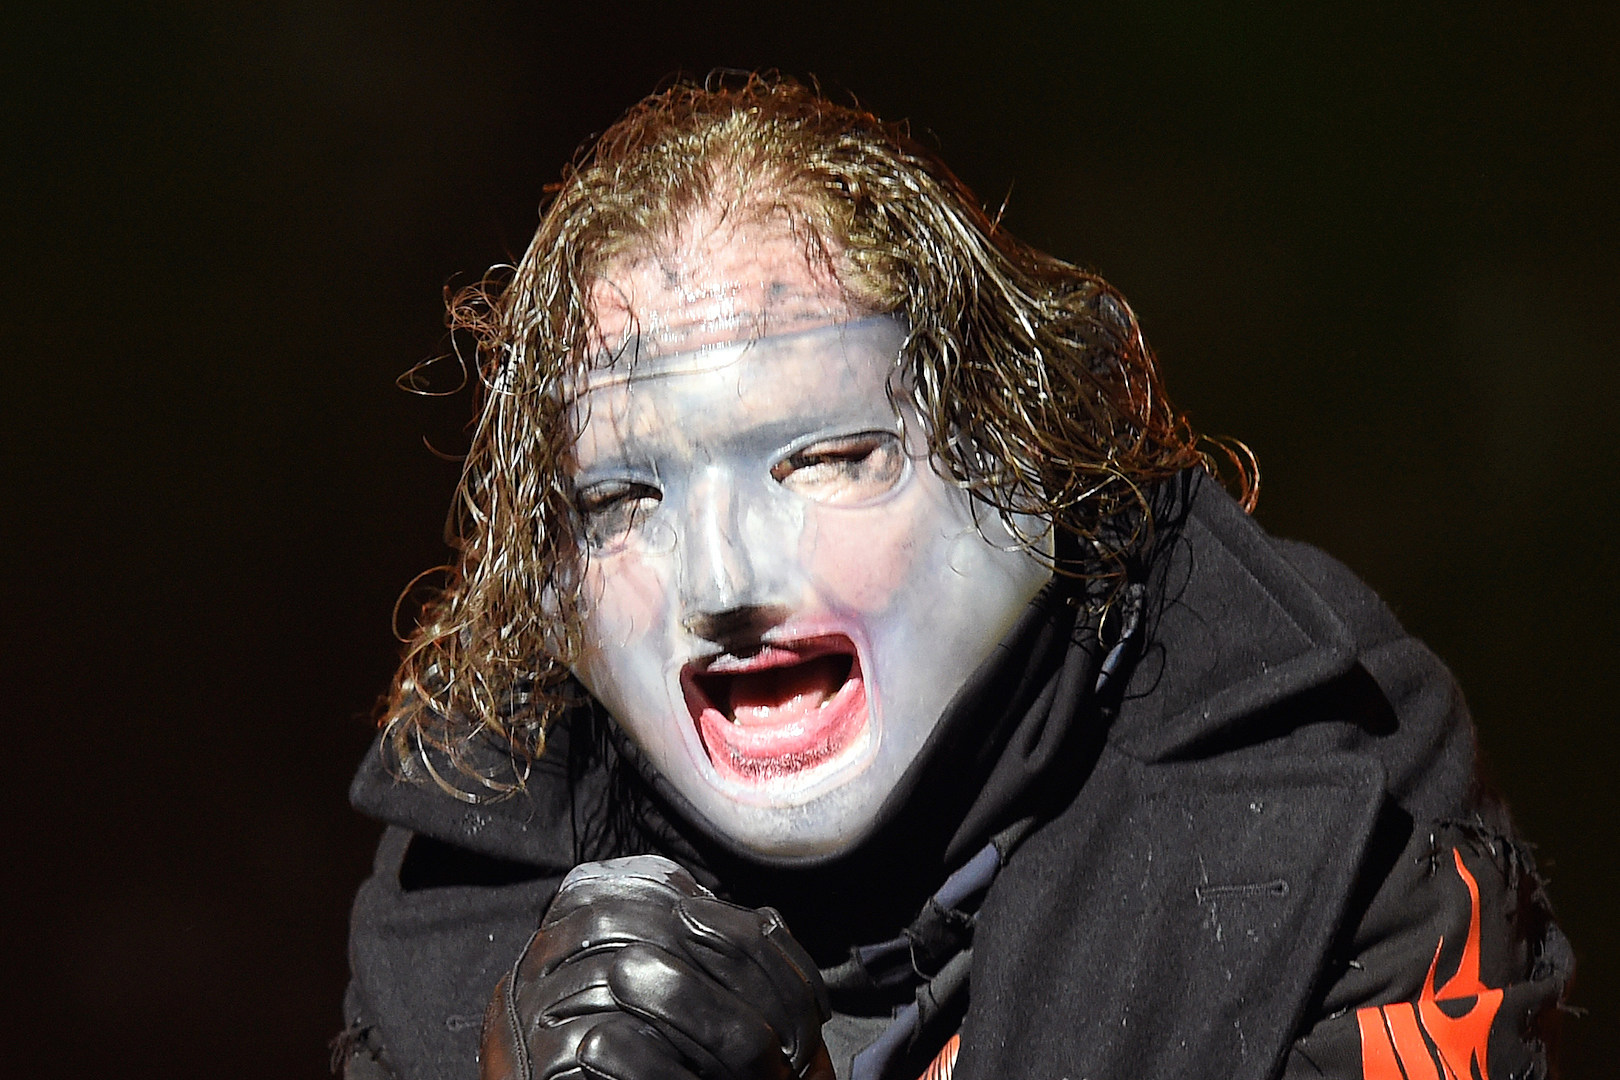 Police Now Investigating Man's Death at Slipknot Show